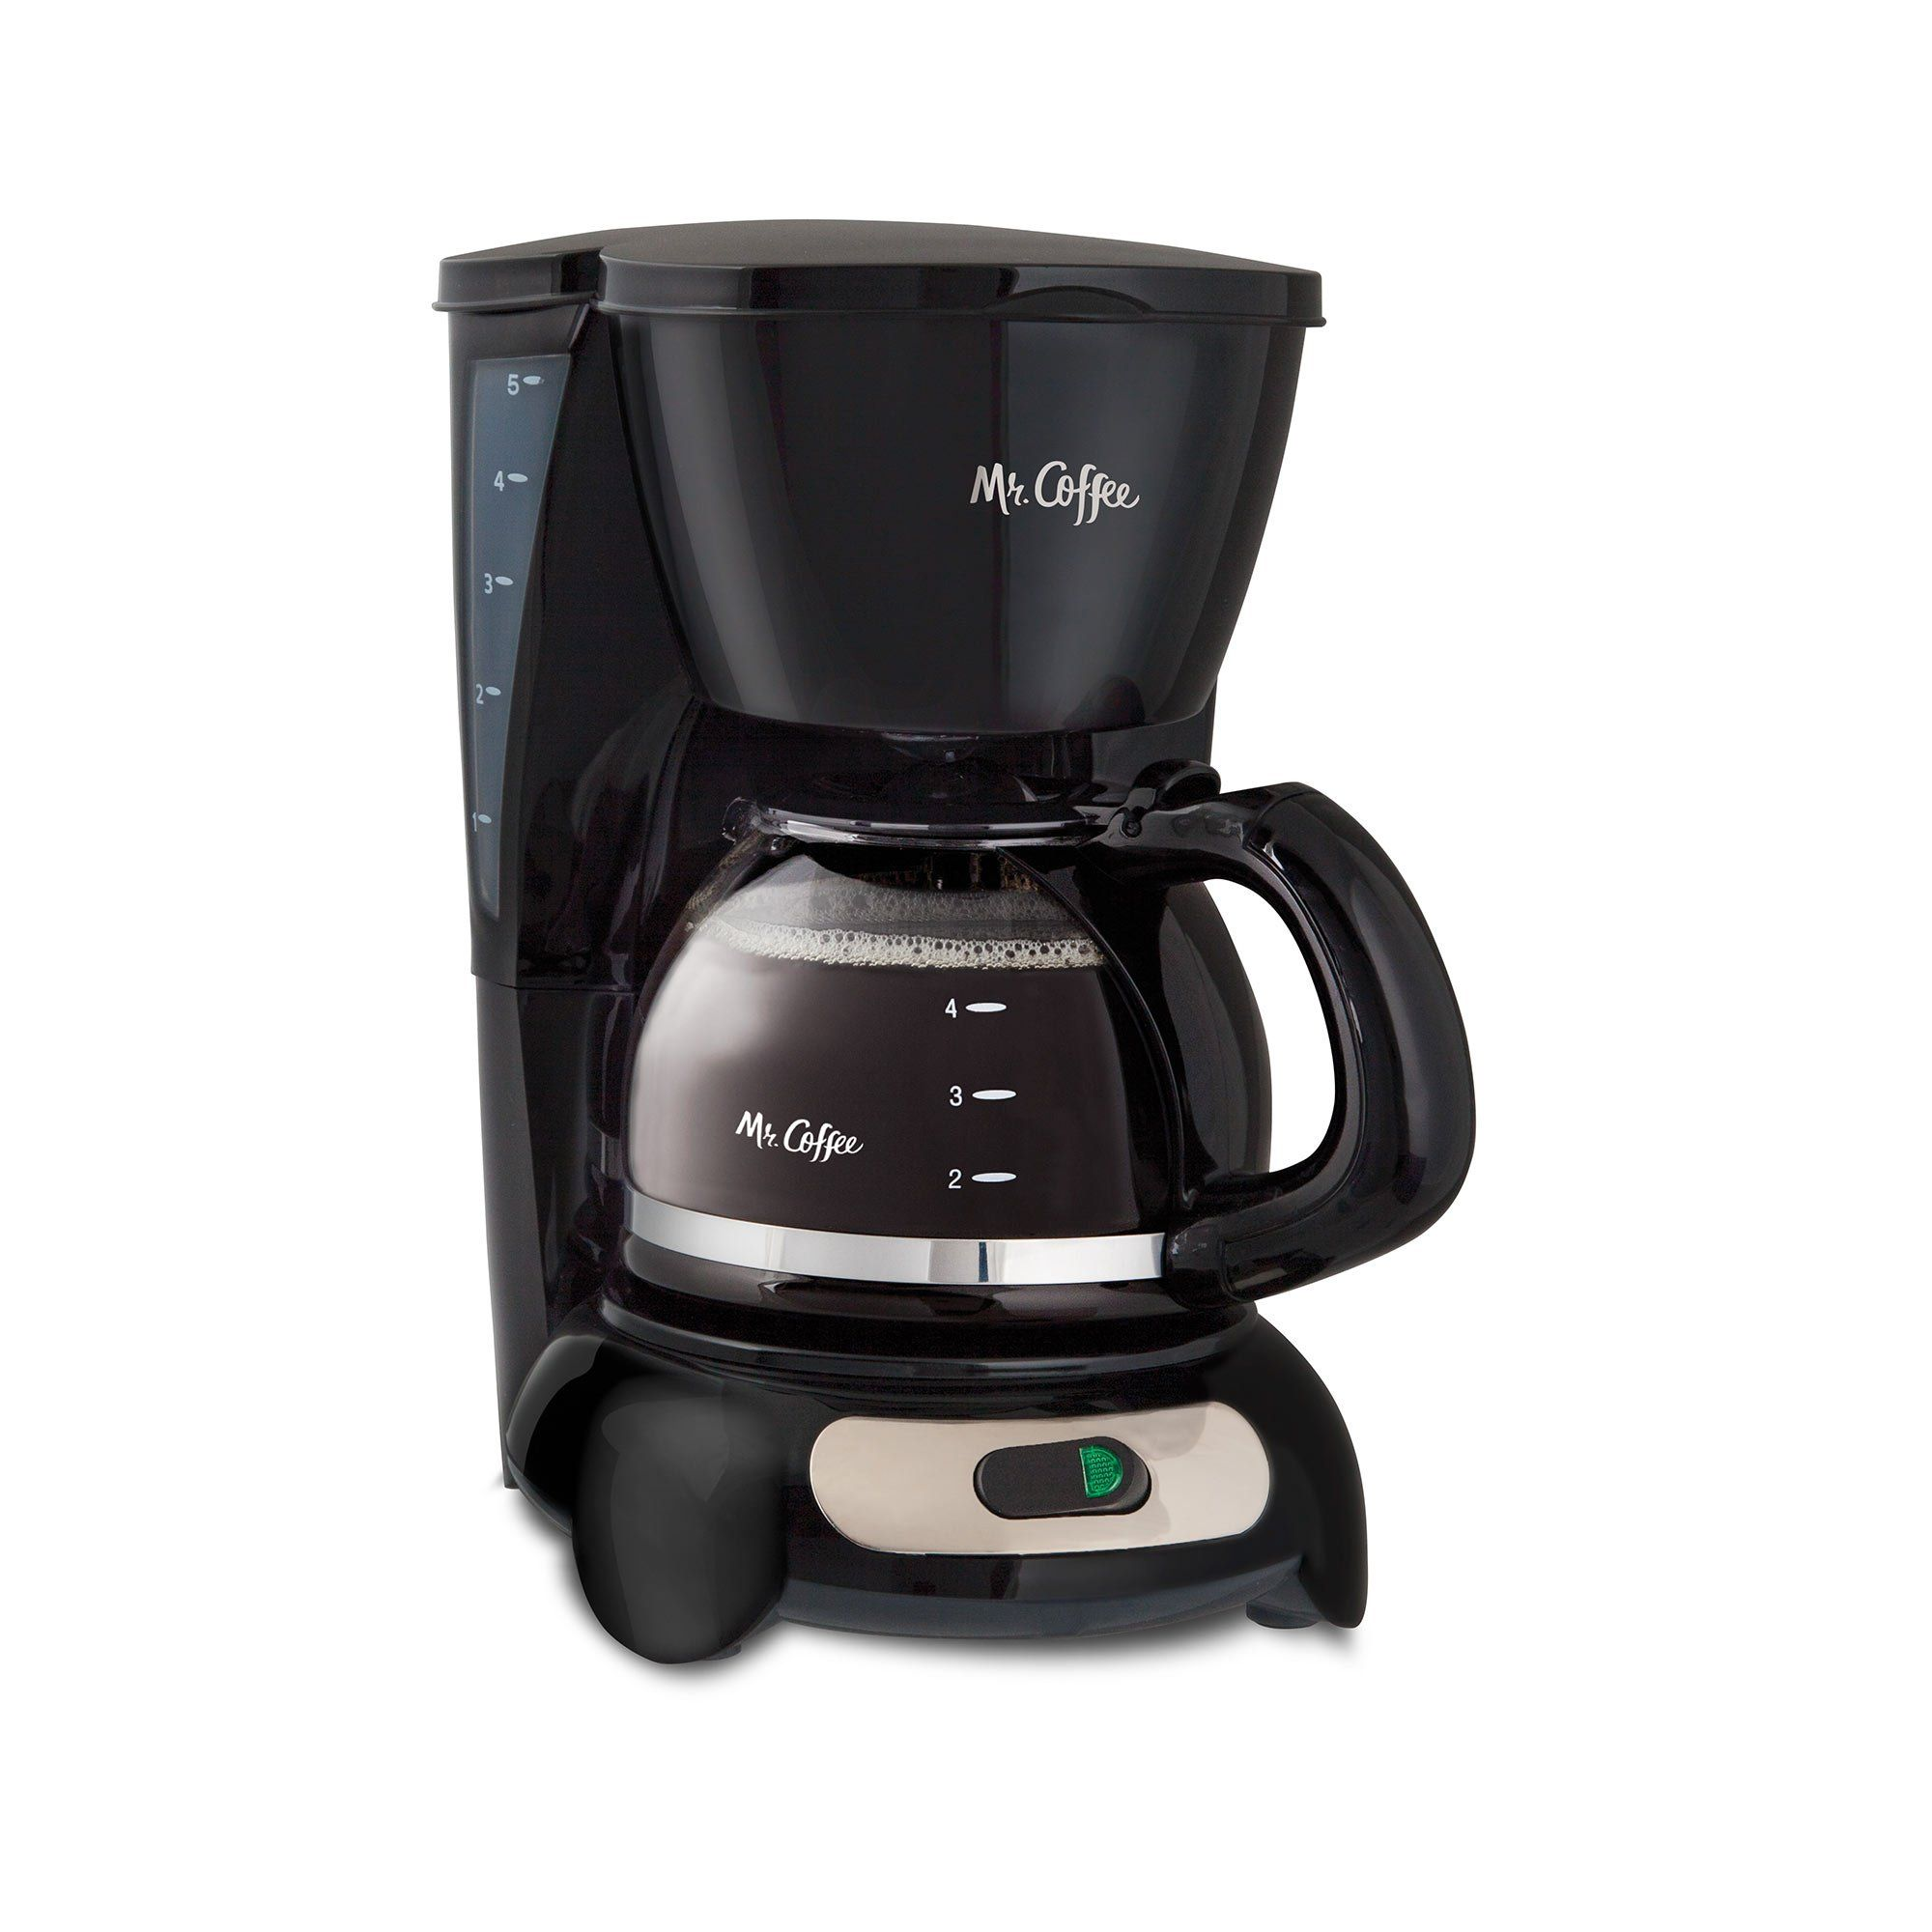 Mr. Coffee 5Cup Classic Brewing Coffee Maker for a Perfect